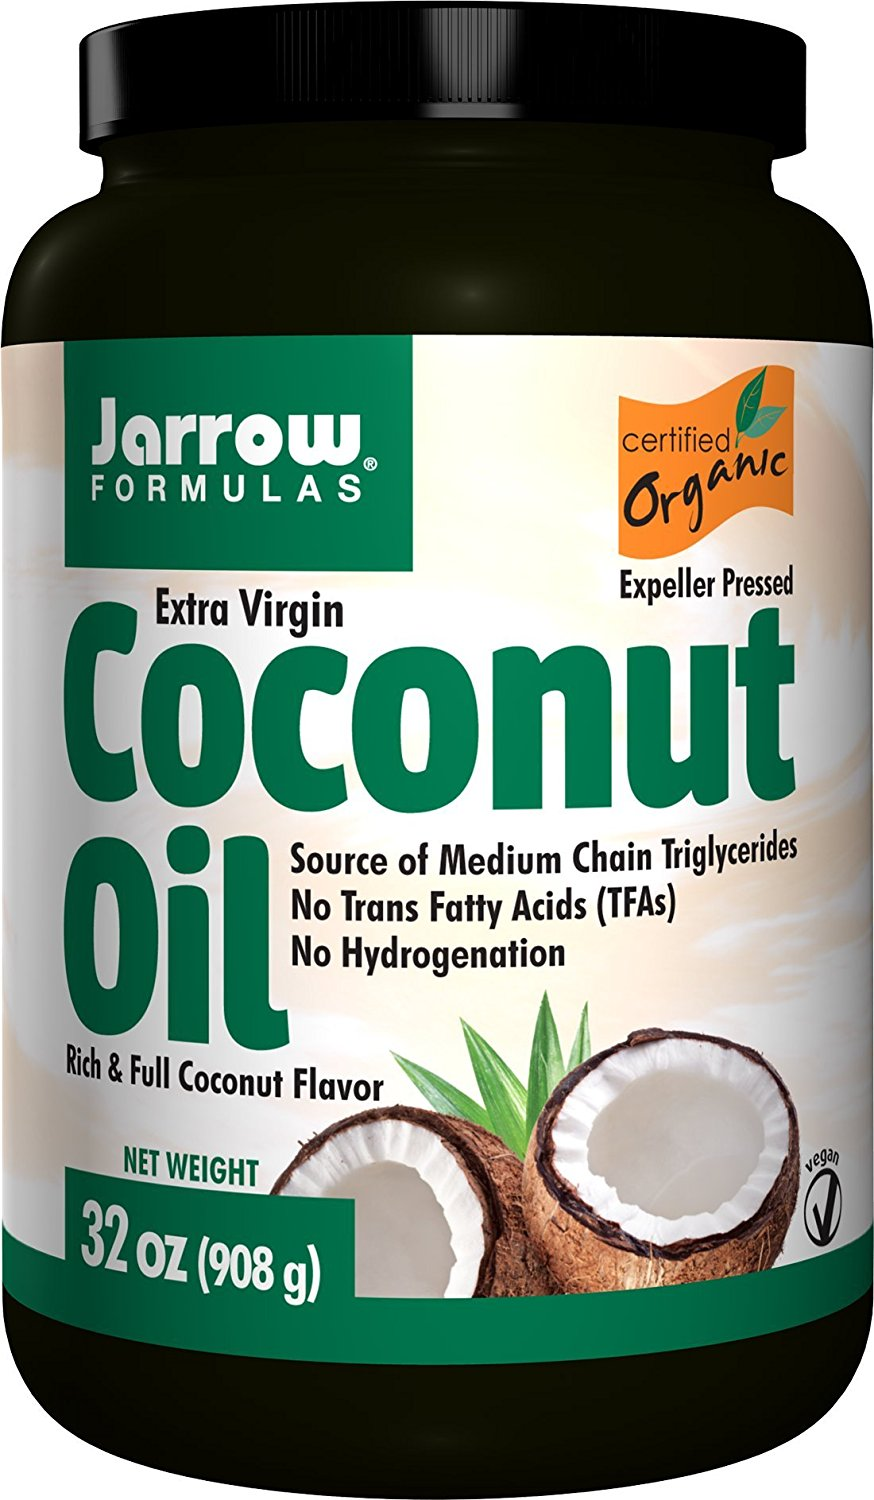 Jarrow Coconut Oil Extra Virgin